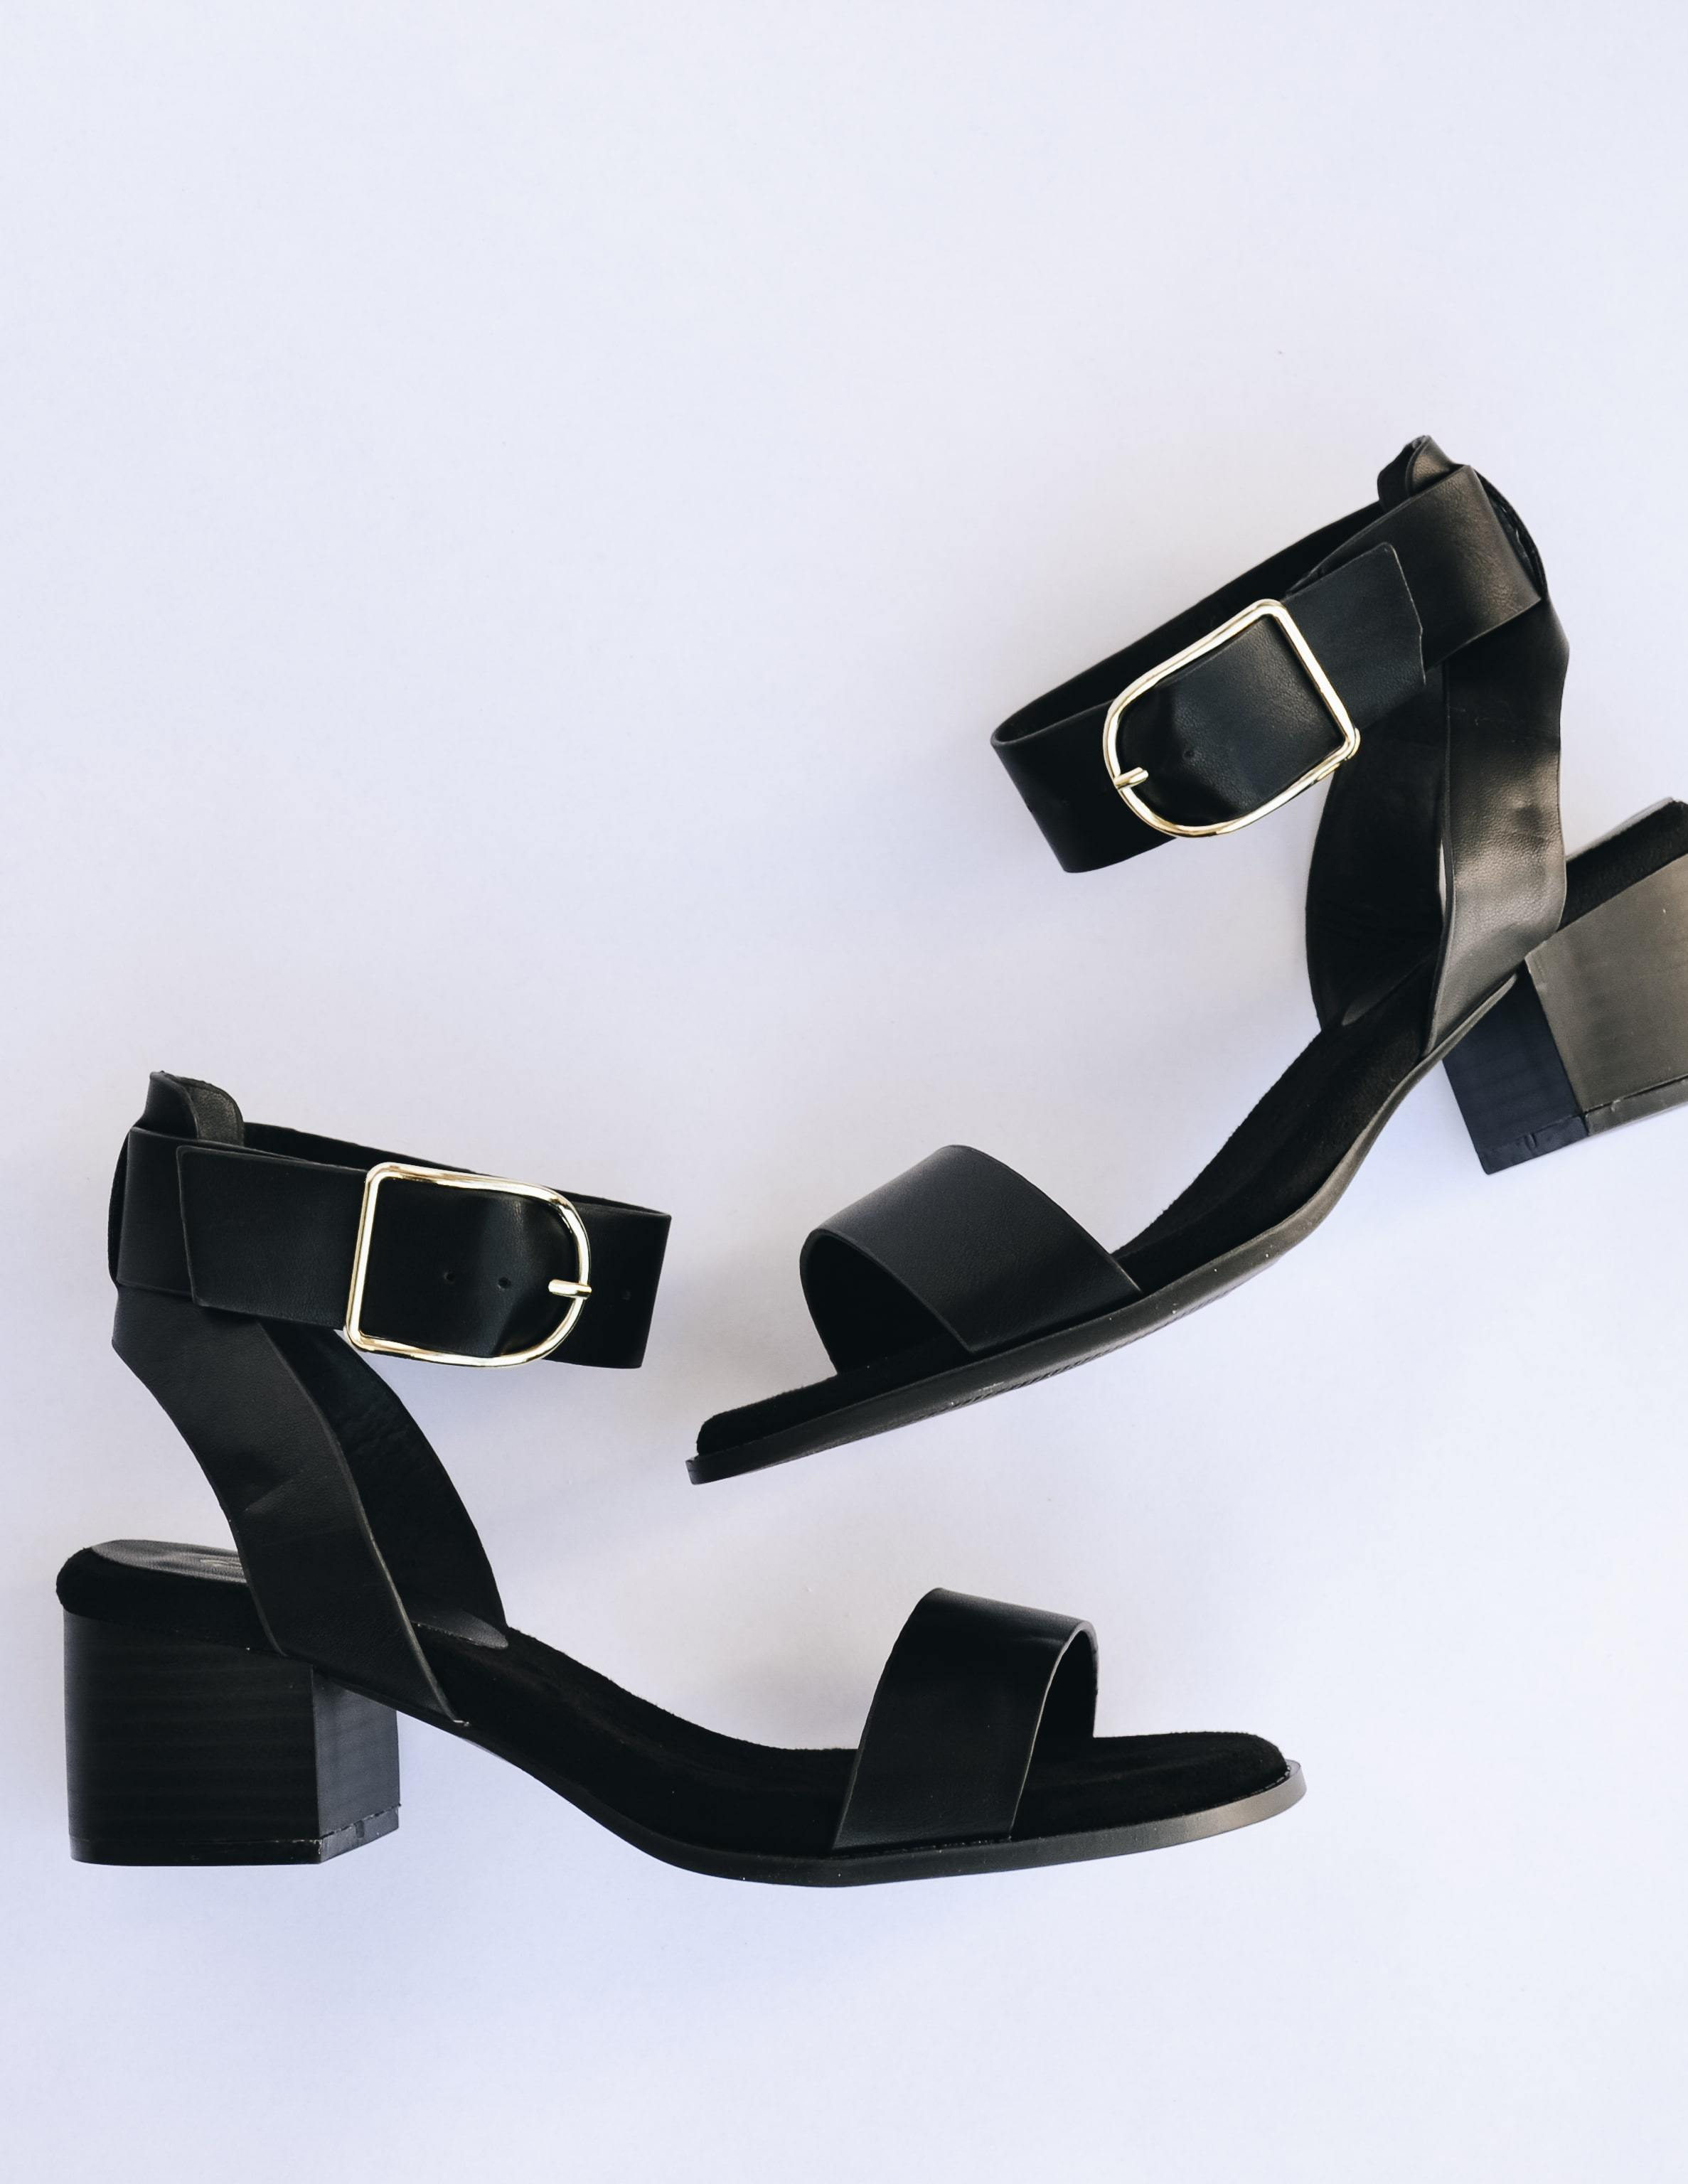 Black rich girl heel with black block heel and straps over toe and ankle